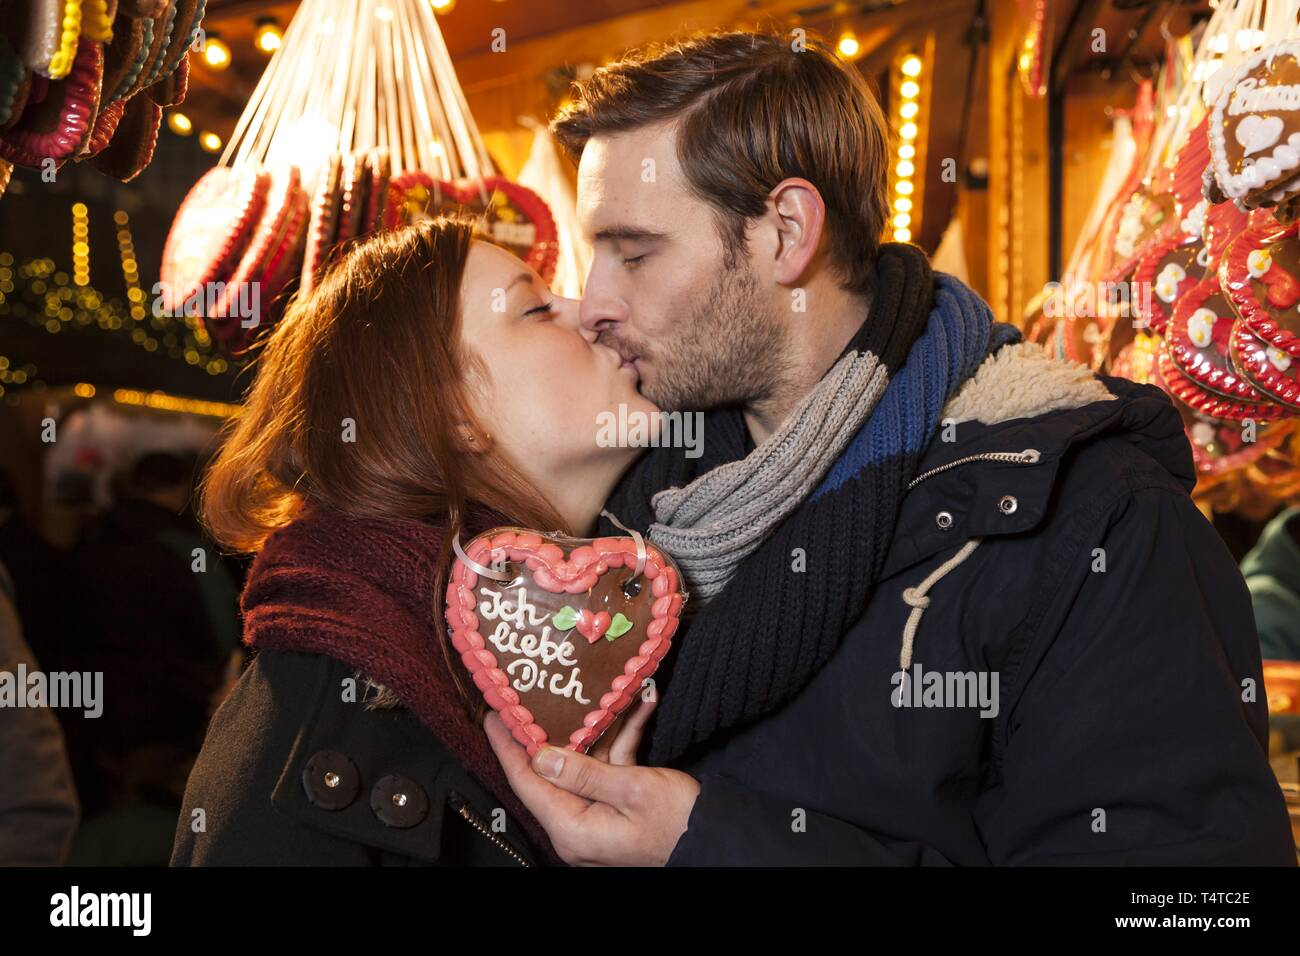 A couple kissing on a Christmas market, gingerbread heart with saying 'Ich liebe Dich', Germany, Europe - Stock Image